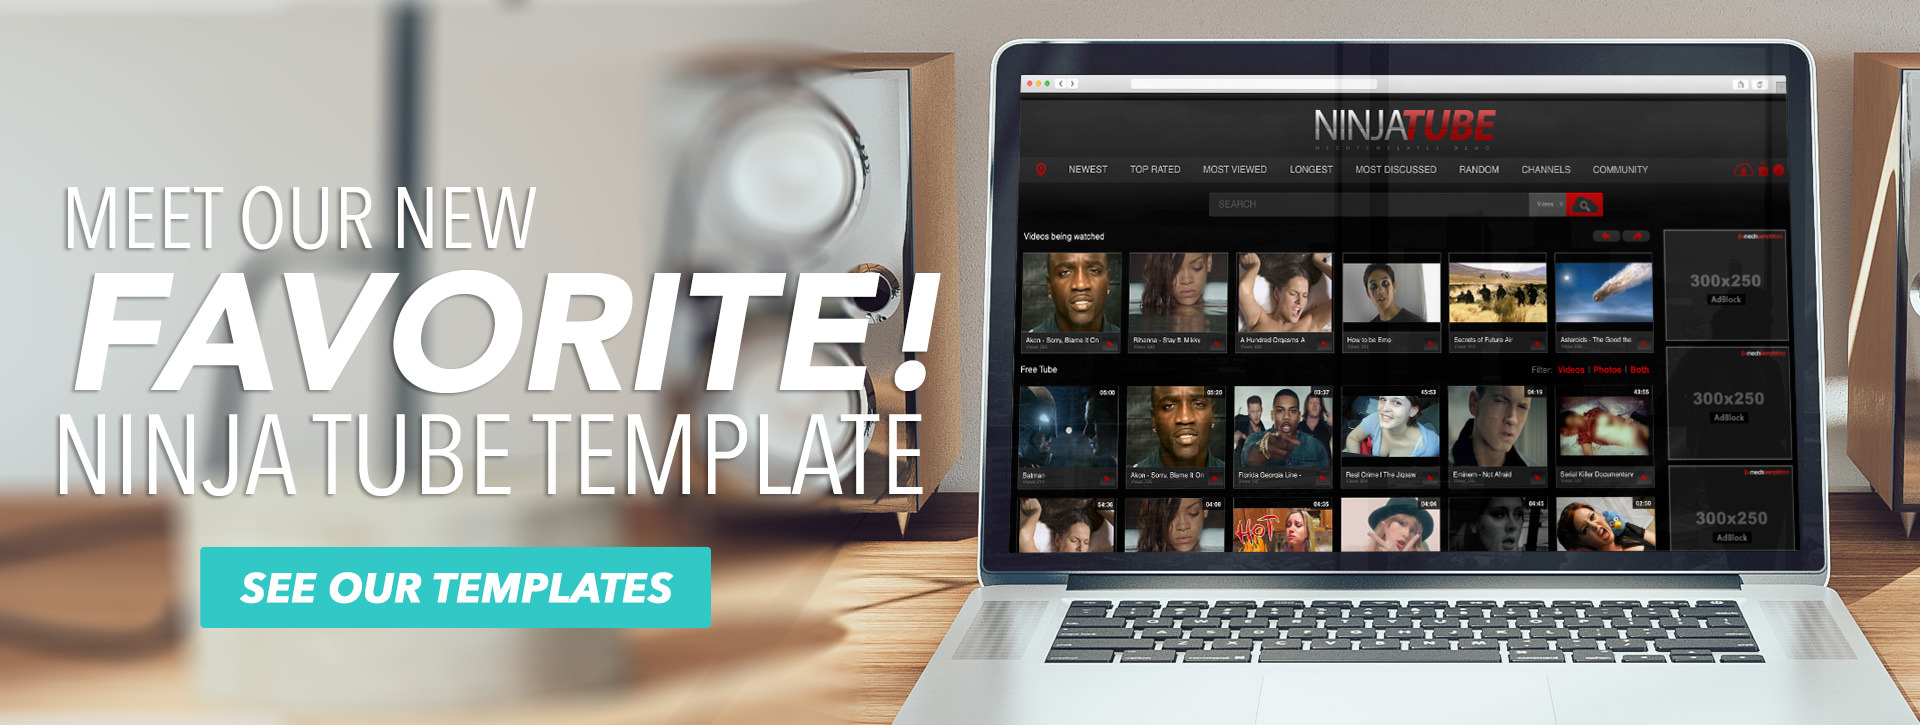 Meet Our New FAVORITE! NinjaTube Template